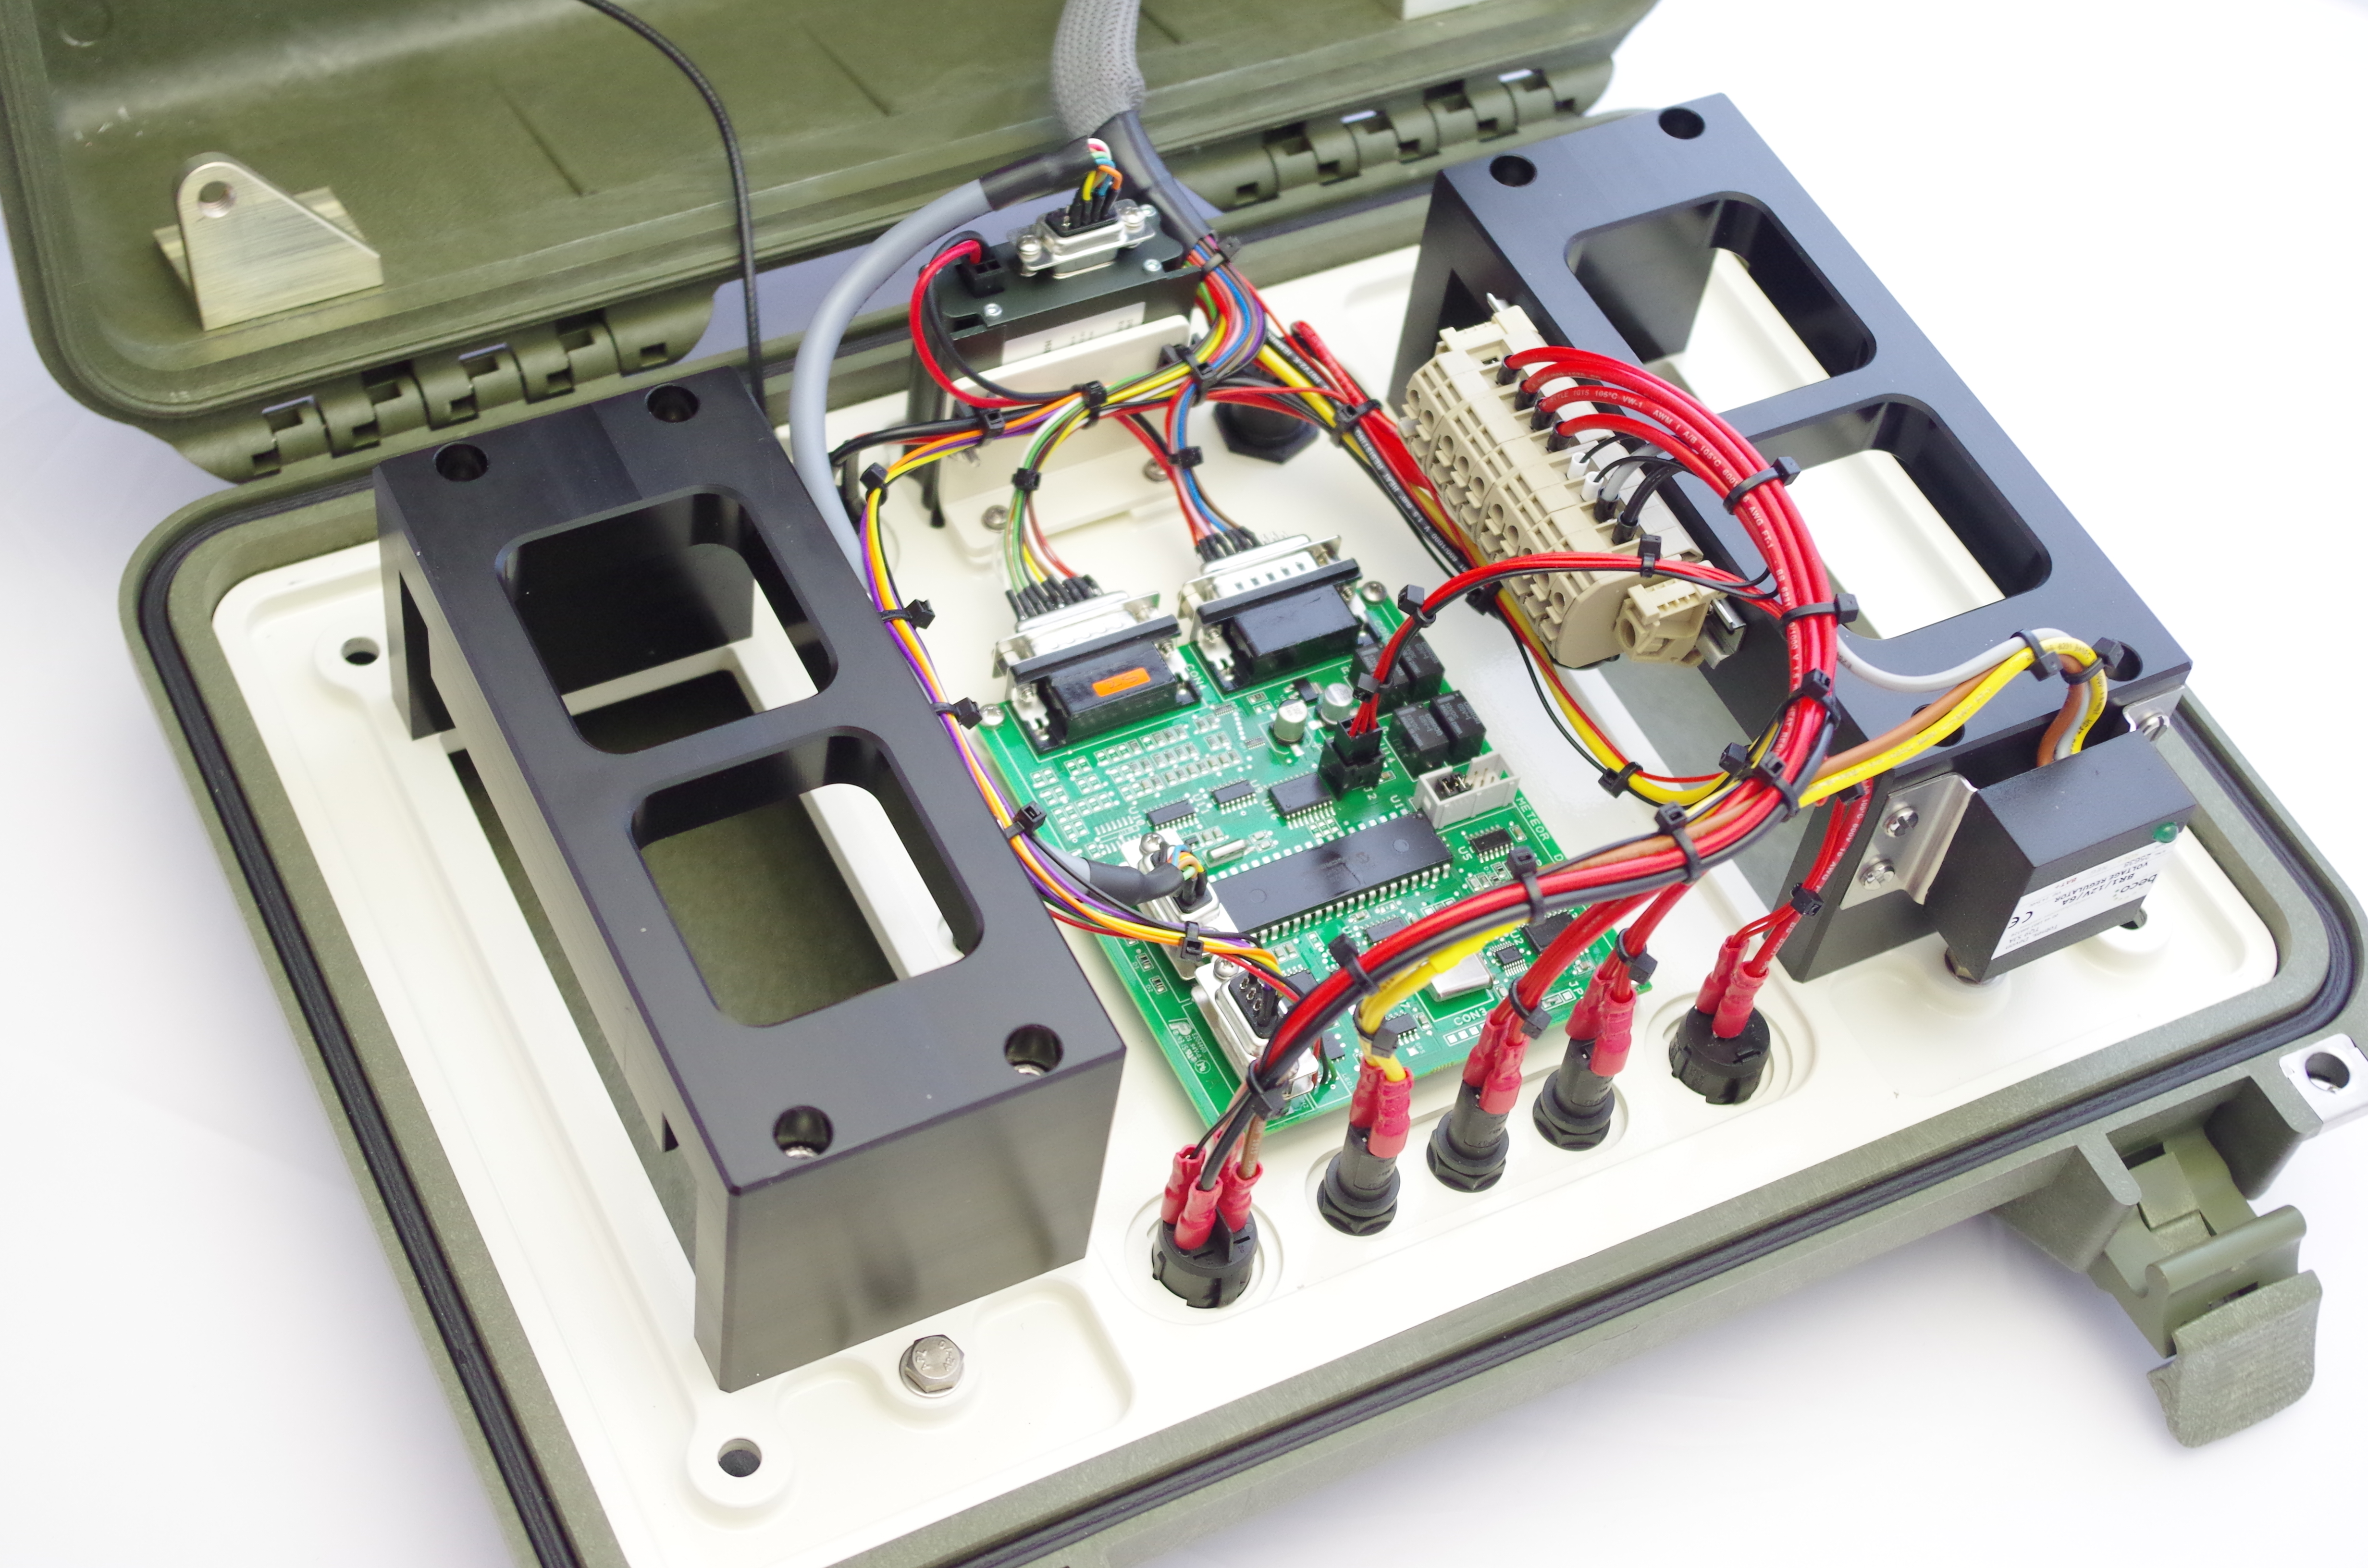 Custom Cable Harnesses Wiring Looms Boxes Assemblies Electrical Accessories Manufacturers Our Services Include Concept And Engineering Design Full Material Procurement Supply Chain Management Uk Manufacturing Test To The Highest Possible